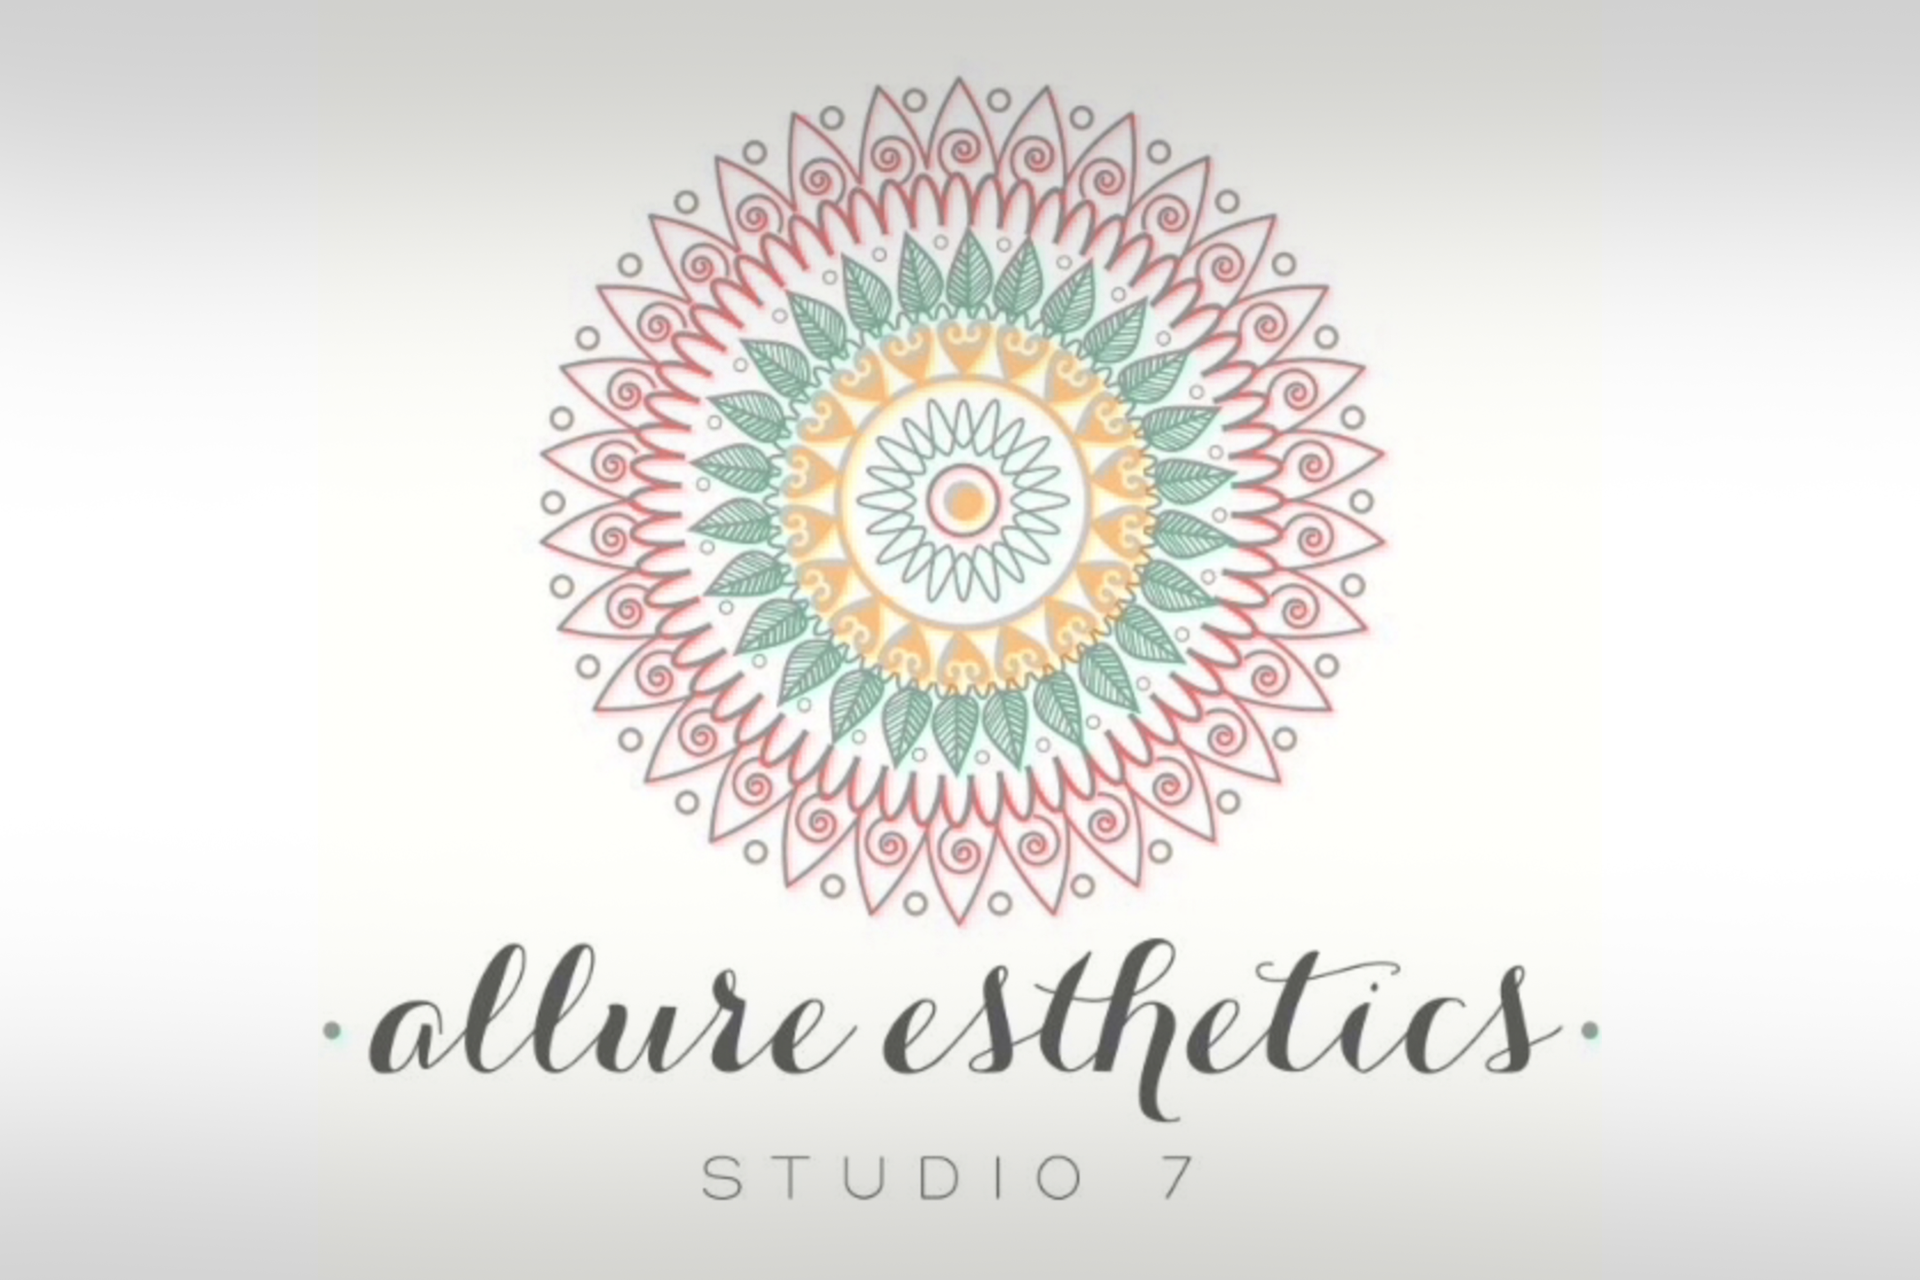 Allure esthetics studio 7 in rochester mn vagaro for A list salon rochester